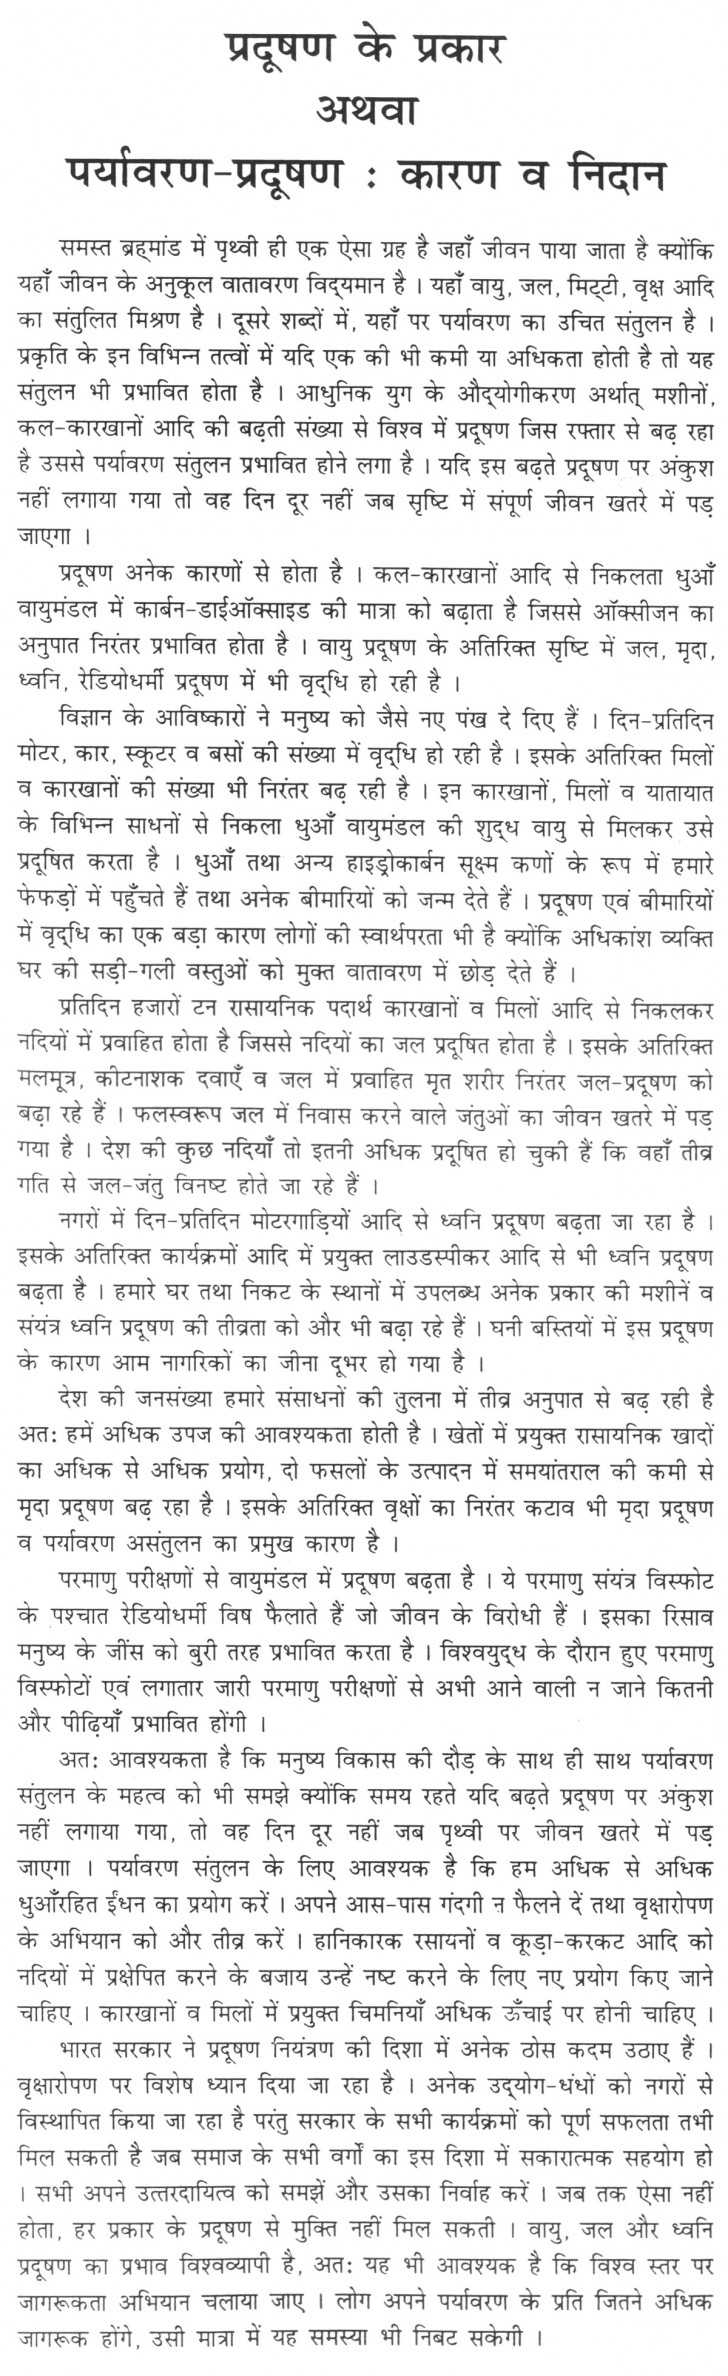 014 Good Habits Essay In Hindi Exceptional Food Habit 728